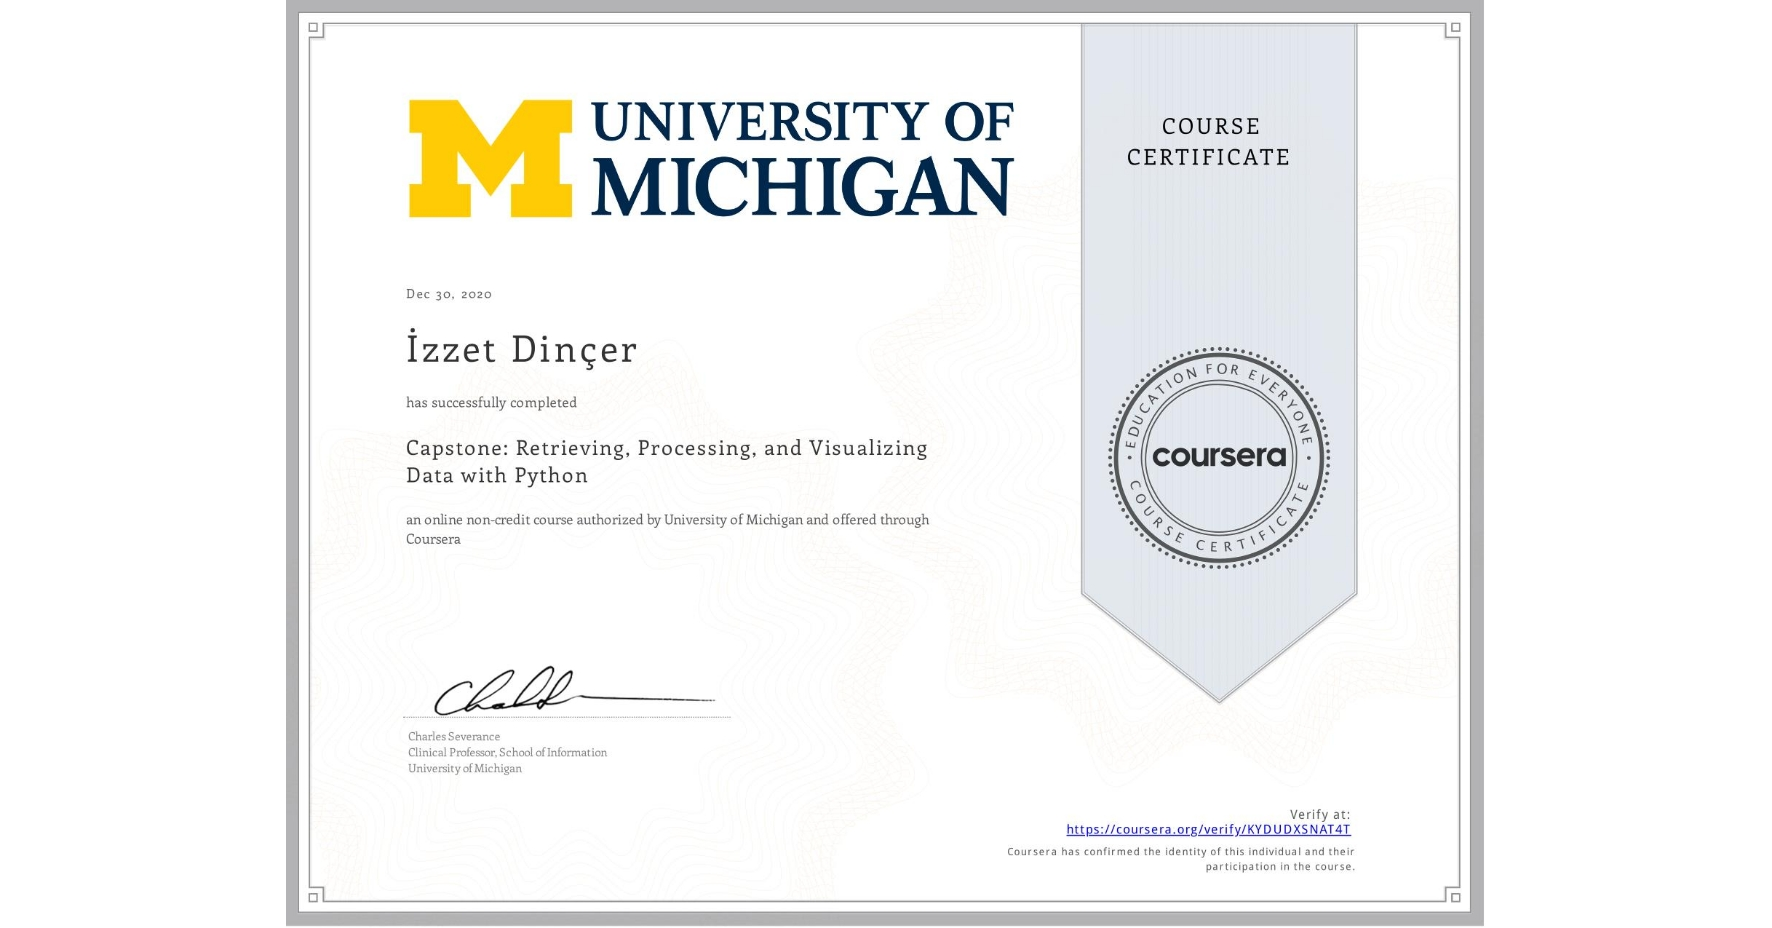 View certificate for İzzet Dinçer, Capstone: Retrieving, Processing, and Visualizing Data with Python, an online non-credit course authorized by University of Michigan and offered through Coursera